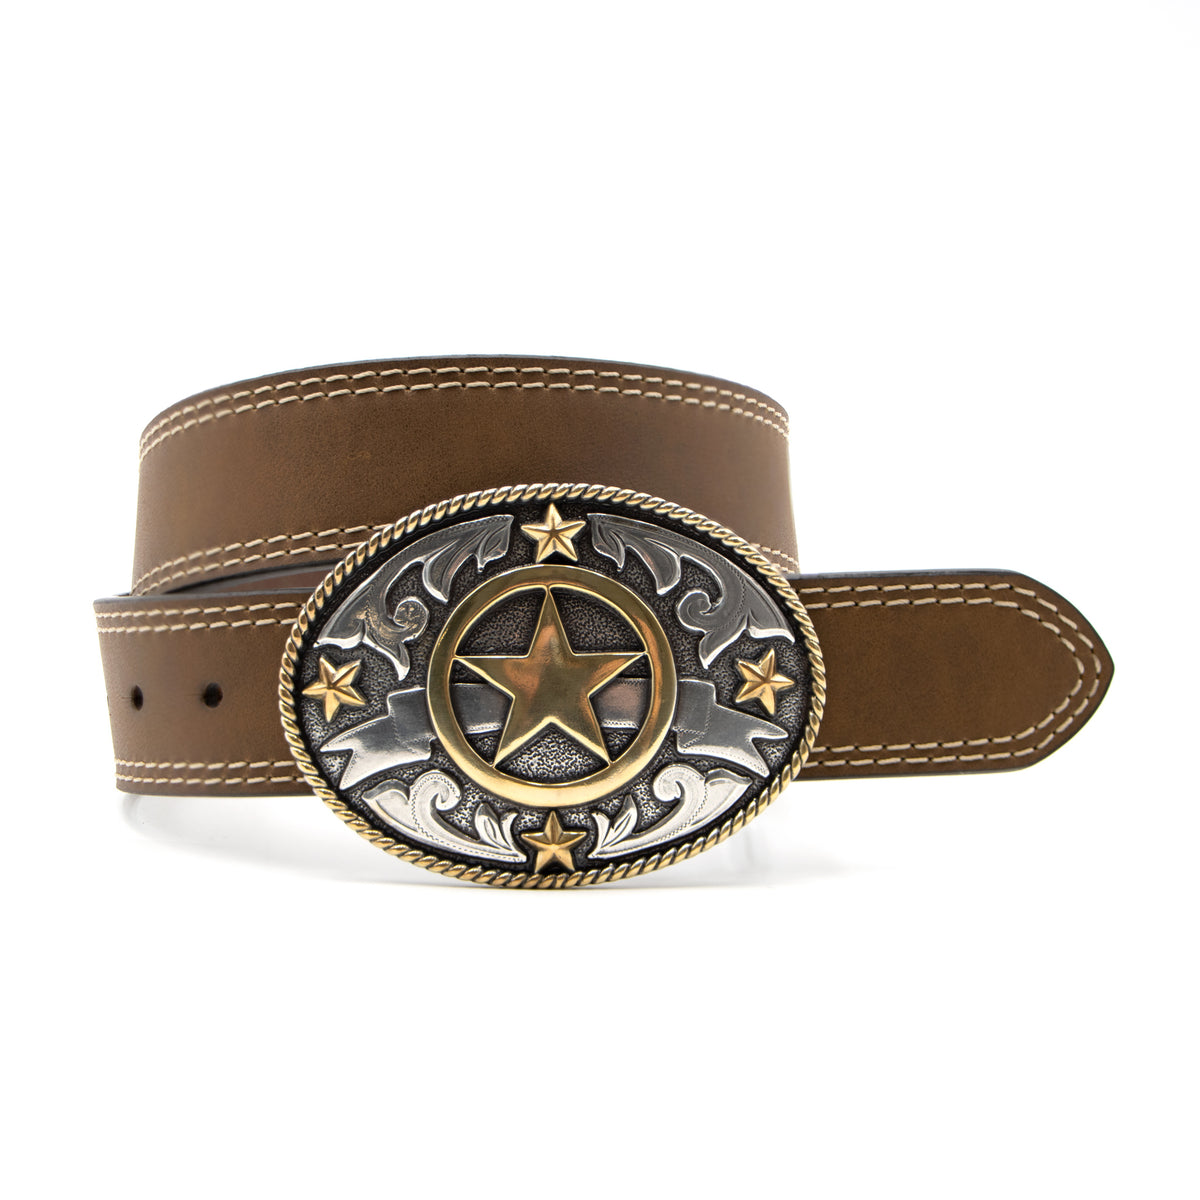 "Kids' 1 1/4"" Texas Ranger Buckle with Double Stitch Belt"